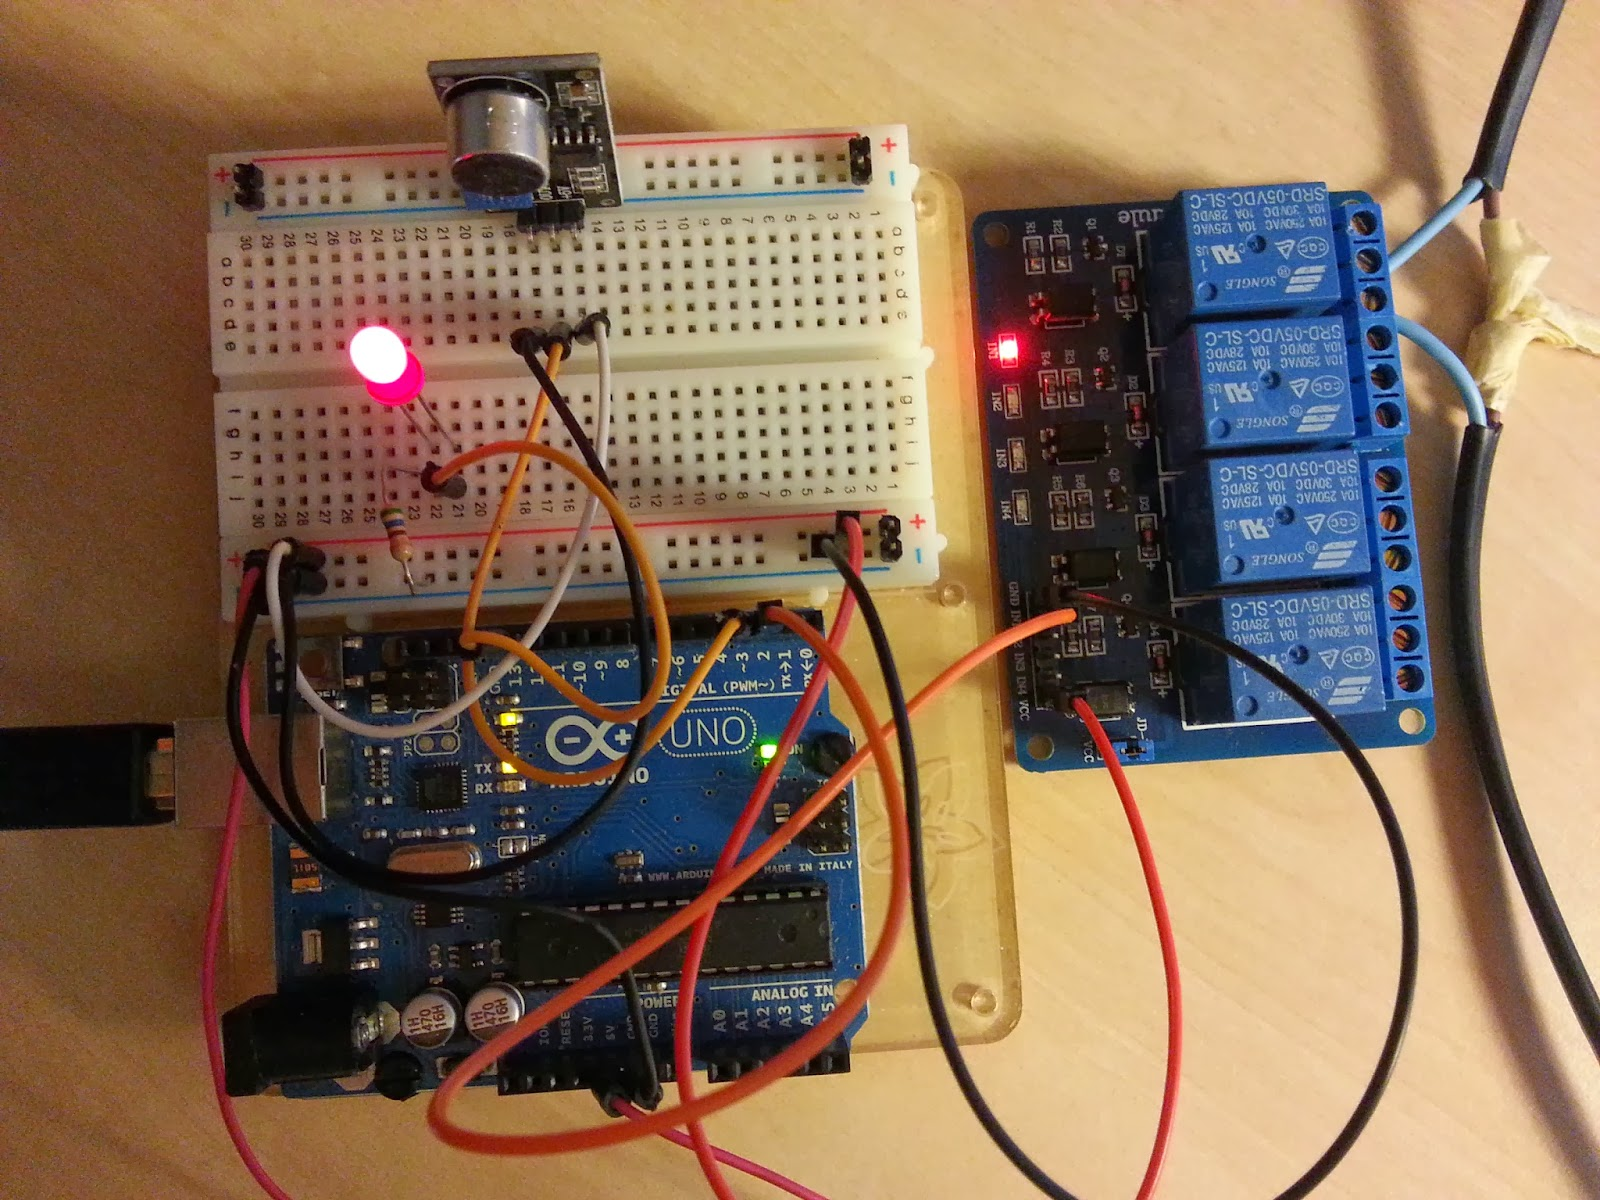 Two Cups Of Tea Sound Sensor With Relay - Clap sensitive on off relay